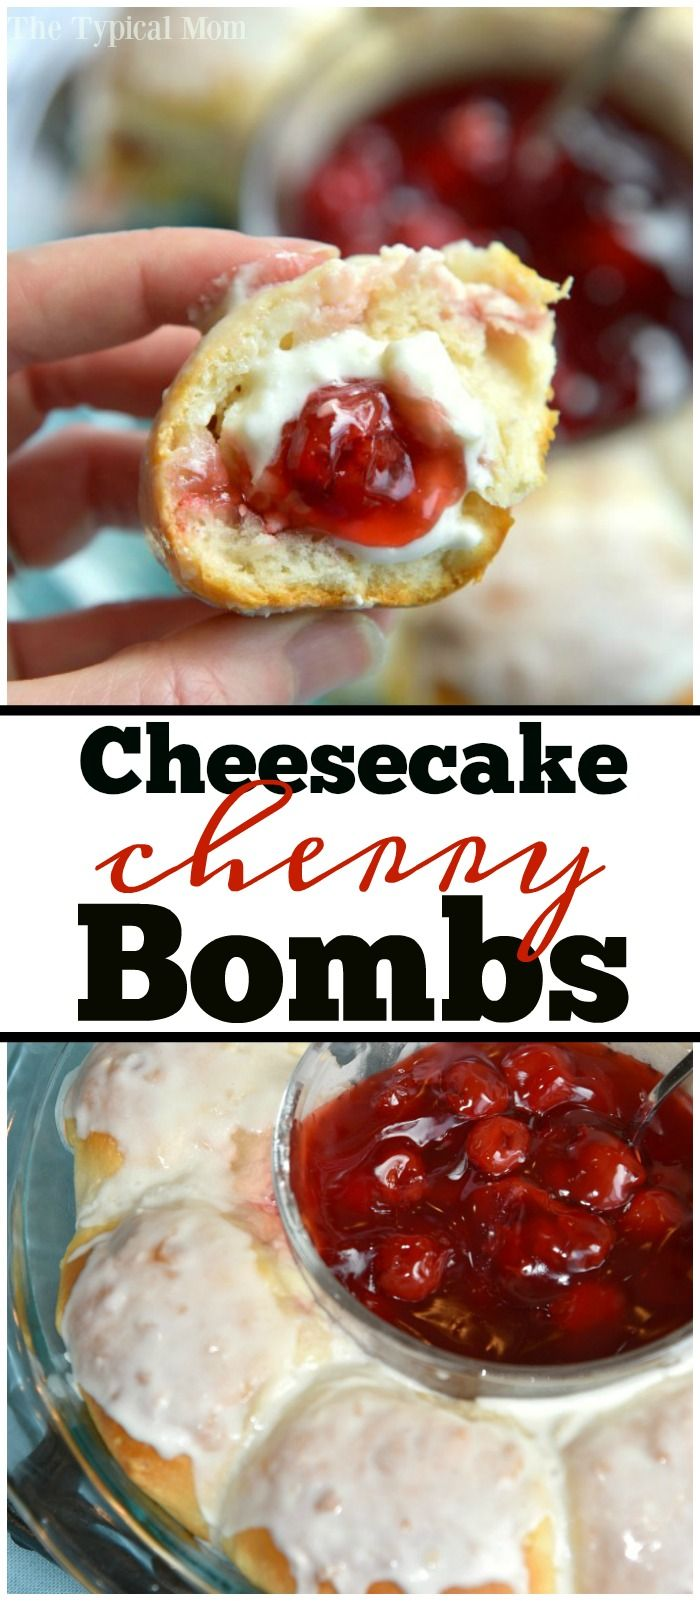 You've got to try these cherry cheesecake bombs!!! They're amazing and easy to do. Perfect brunch or dessert idea using pie filling. via @thetypicalmom